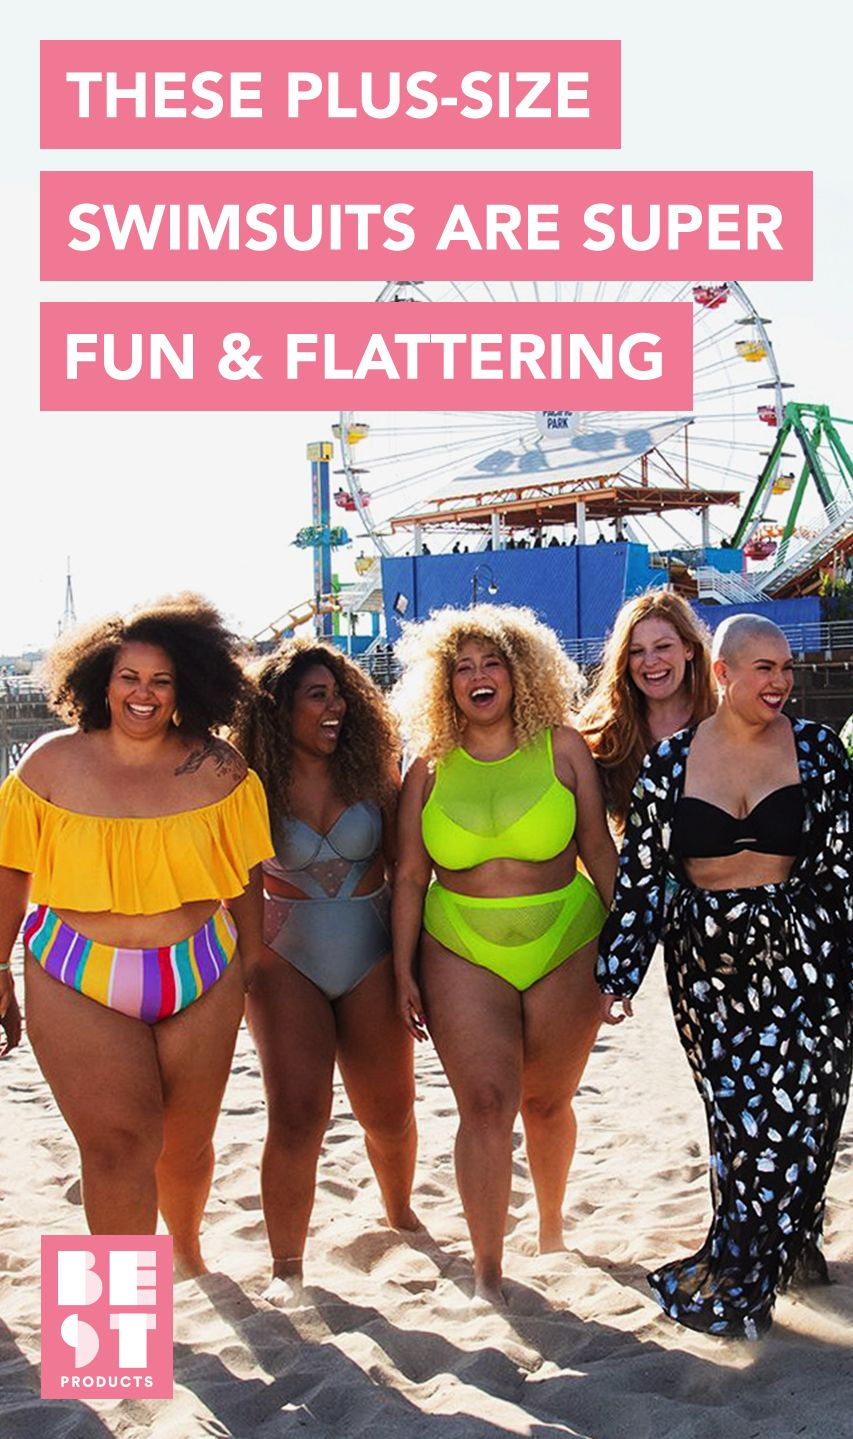 f83962e5f0c 11 Best Plus Size Swimsuits for Summer 2018 - Flattering Plus Size Swimwear    Bikinis